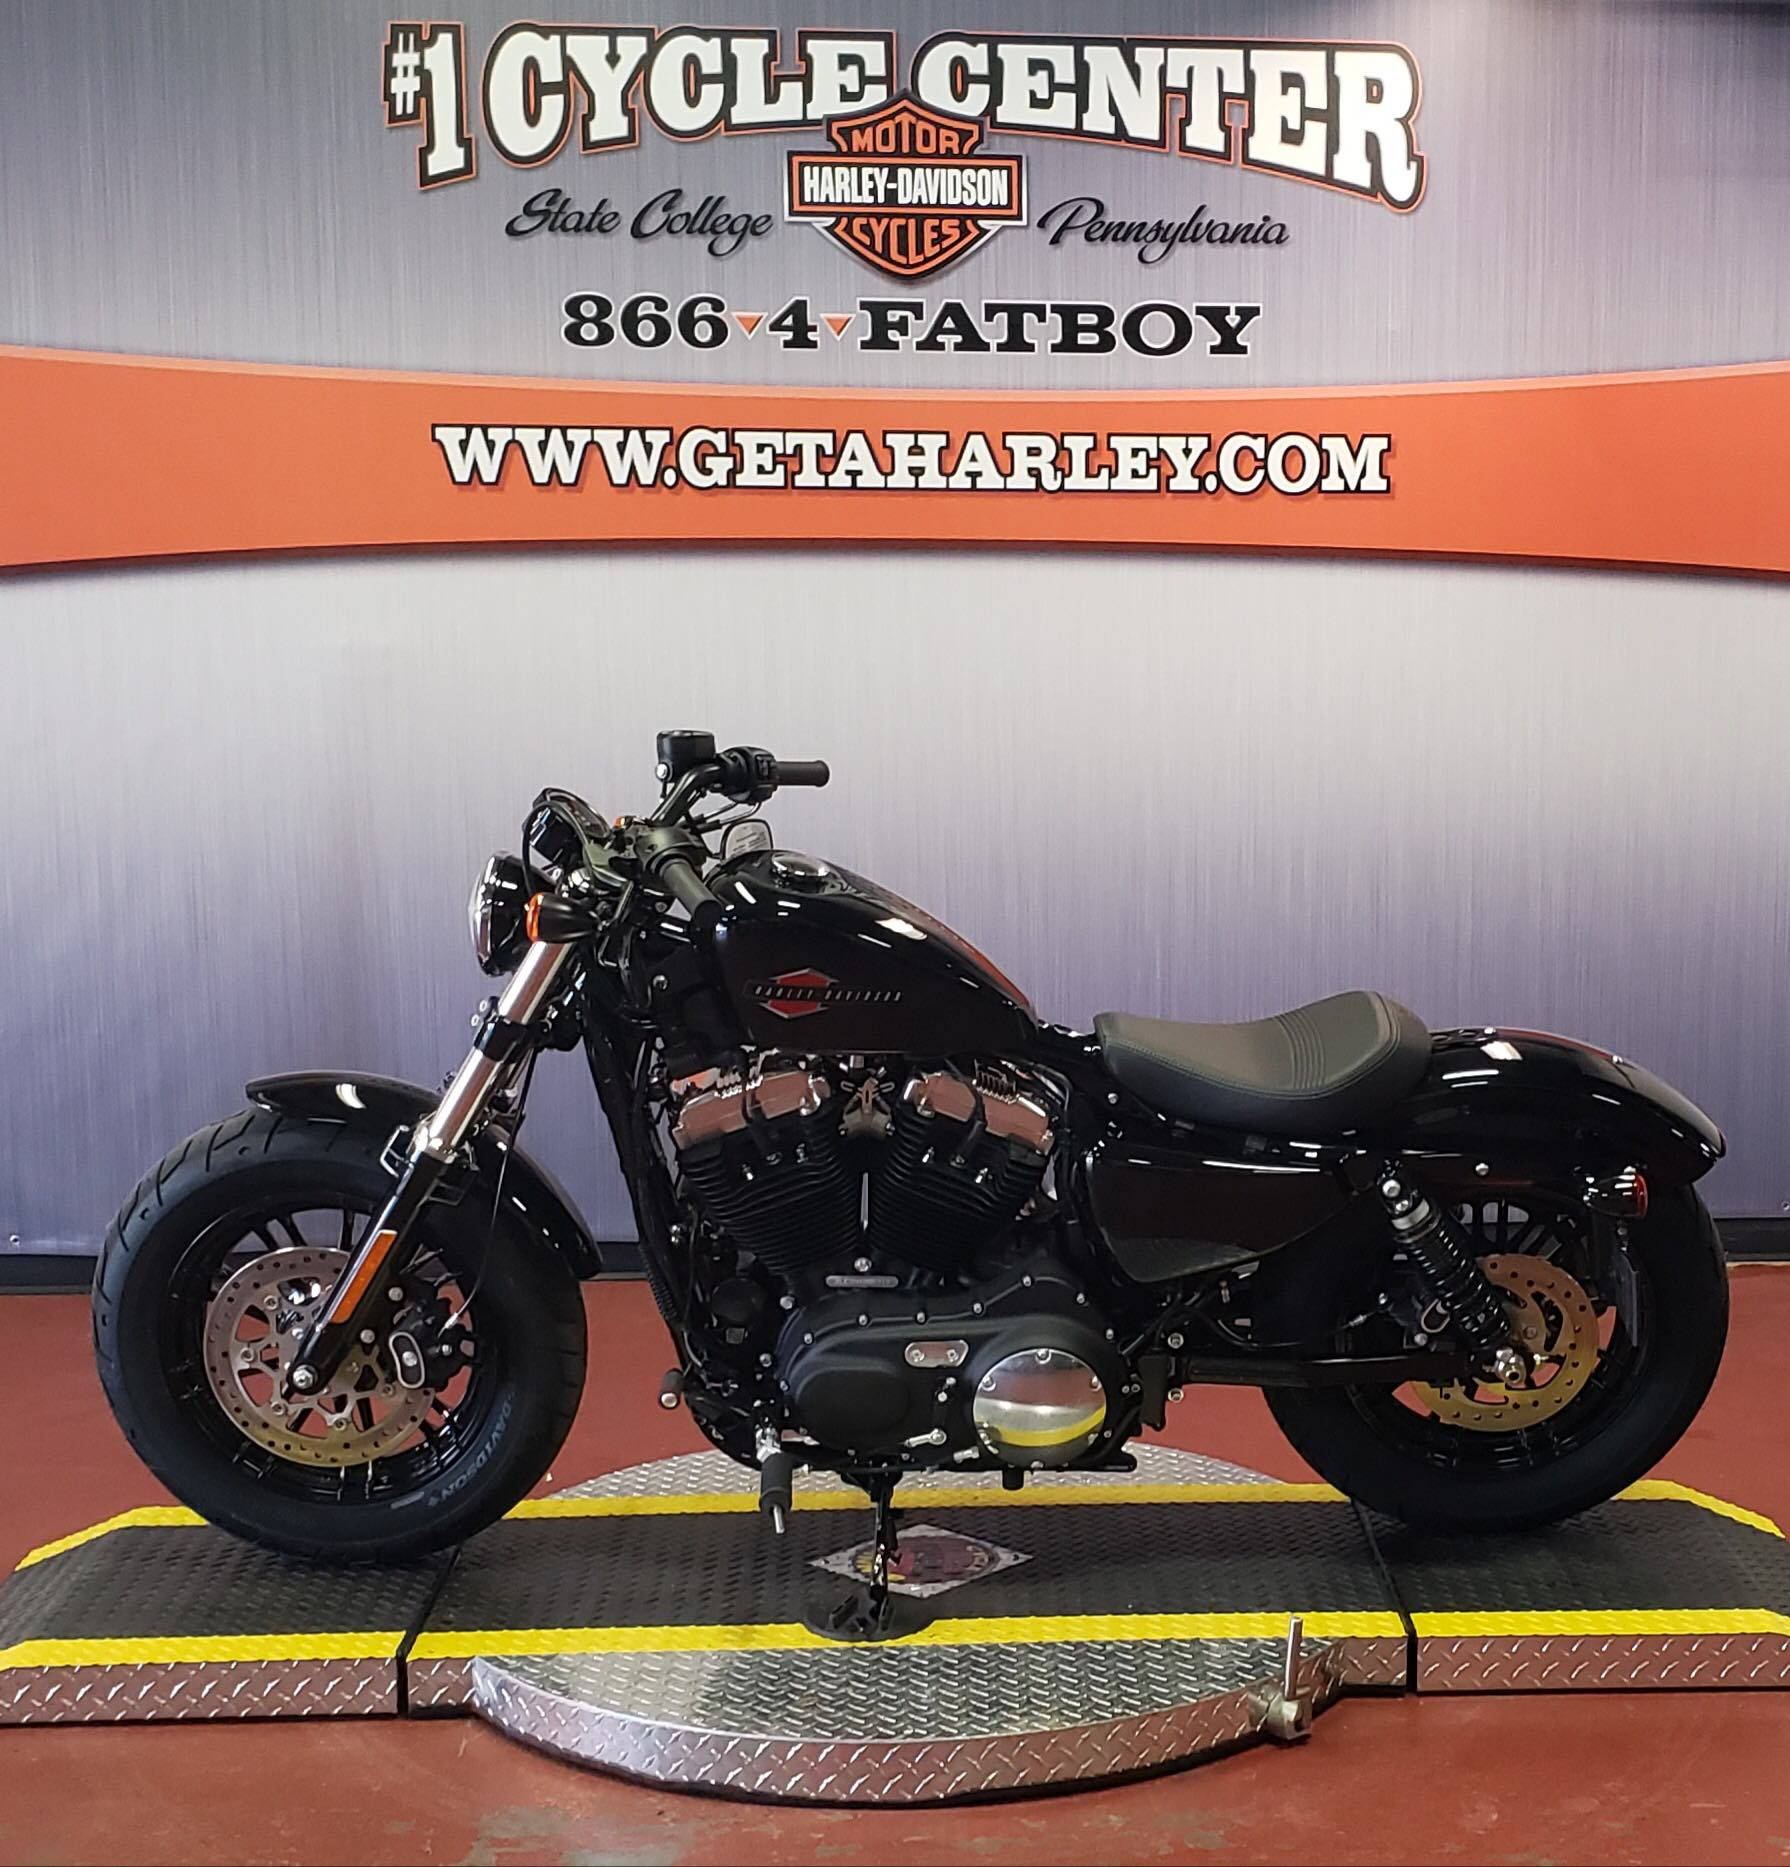 2021 Harley-Davidson Street XL 1200X Forty-Eight at #1 Cycle Center Harley-Davidson